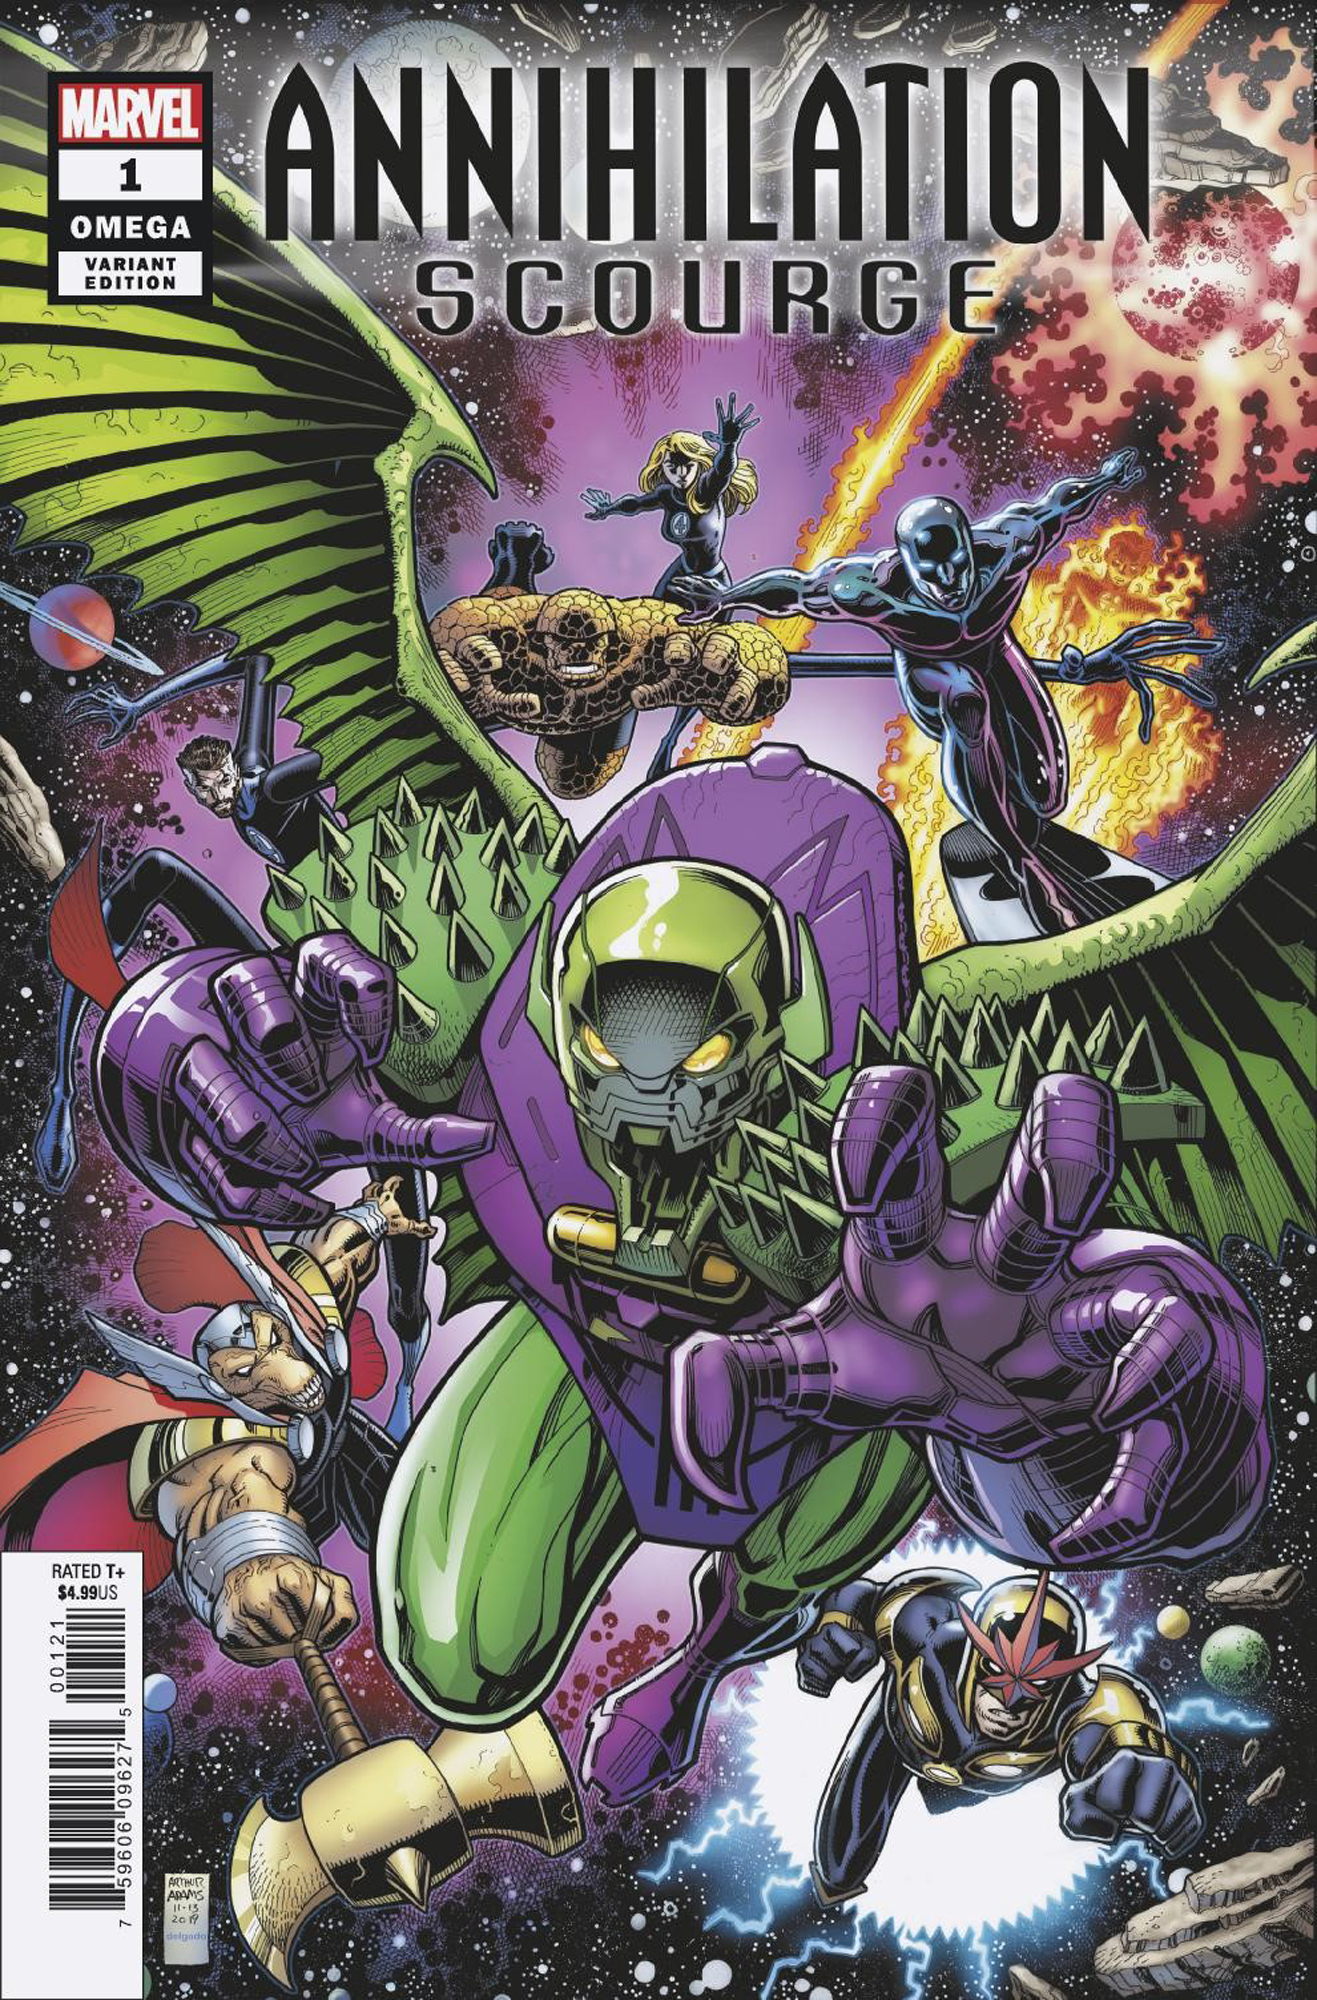 ANNIHILATION SCOURGE OMEGA #1 ART ADAMS VAR